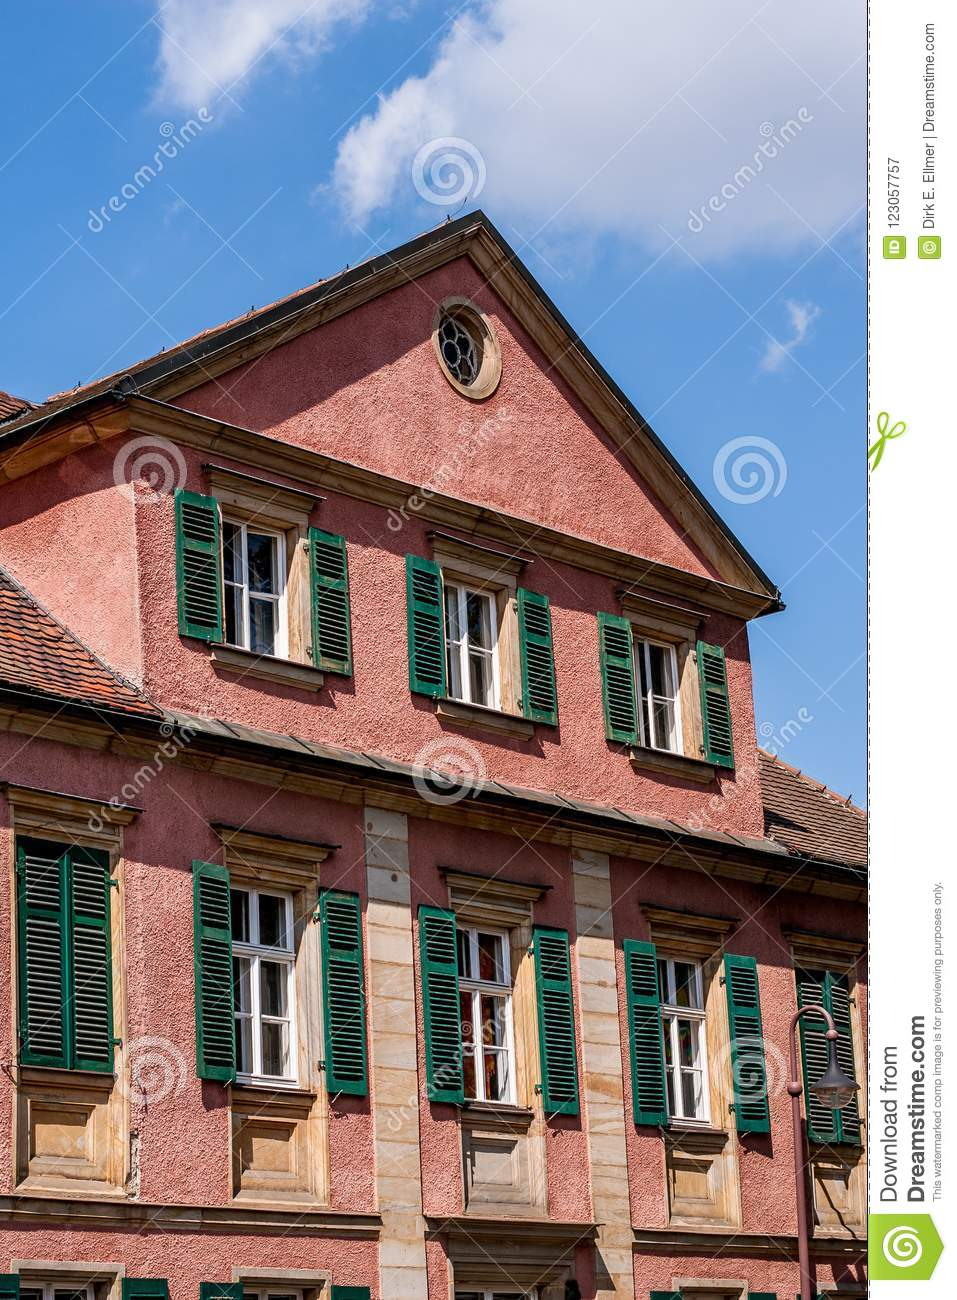 historic building with lattice windows and green shutters editorial